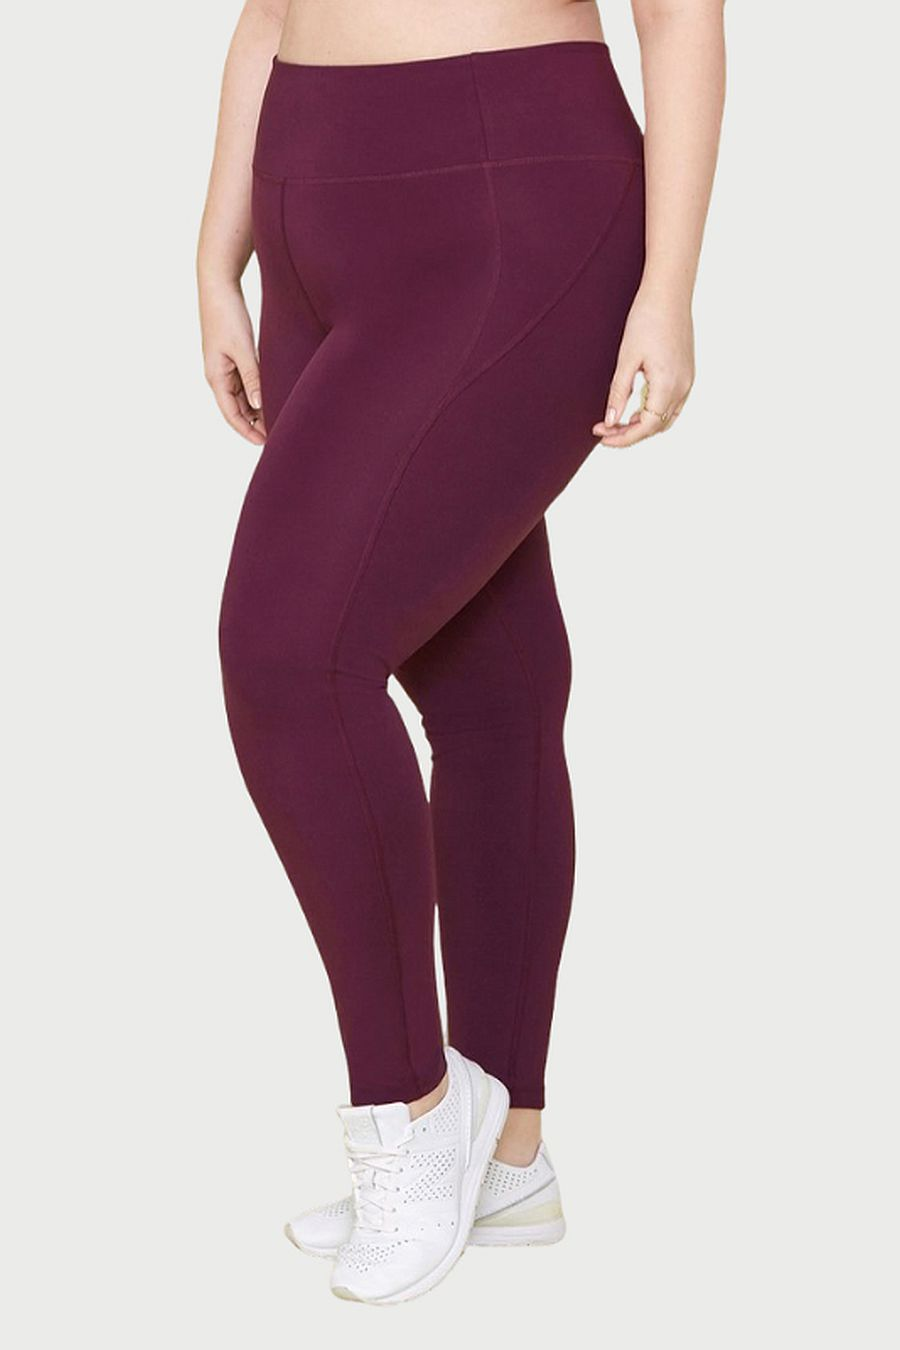 "Girlfriend Collective Plum Compressive Legging (28.5"")"